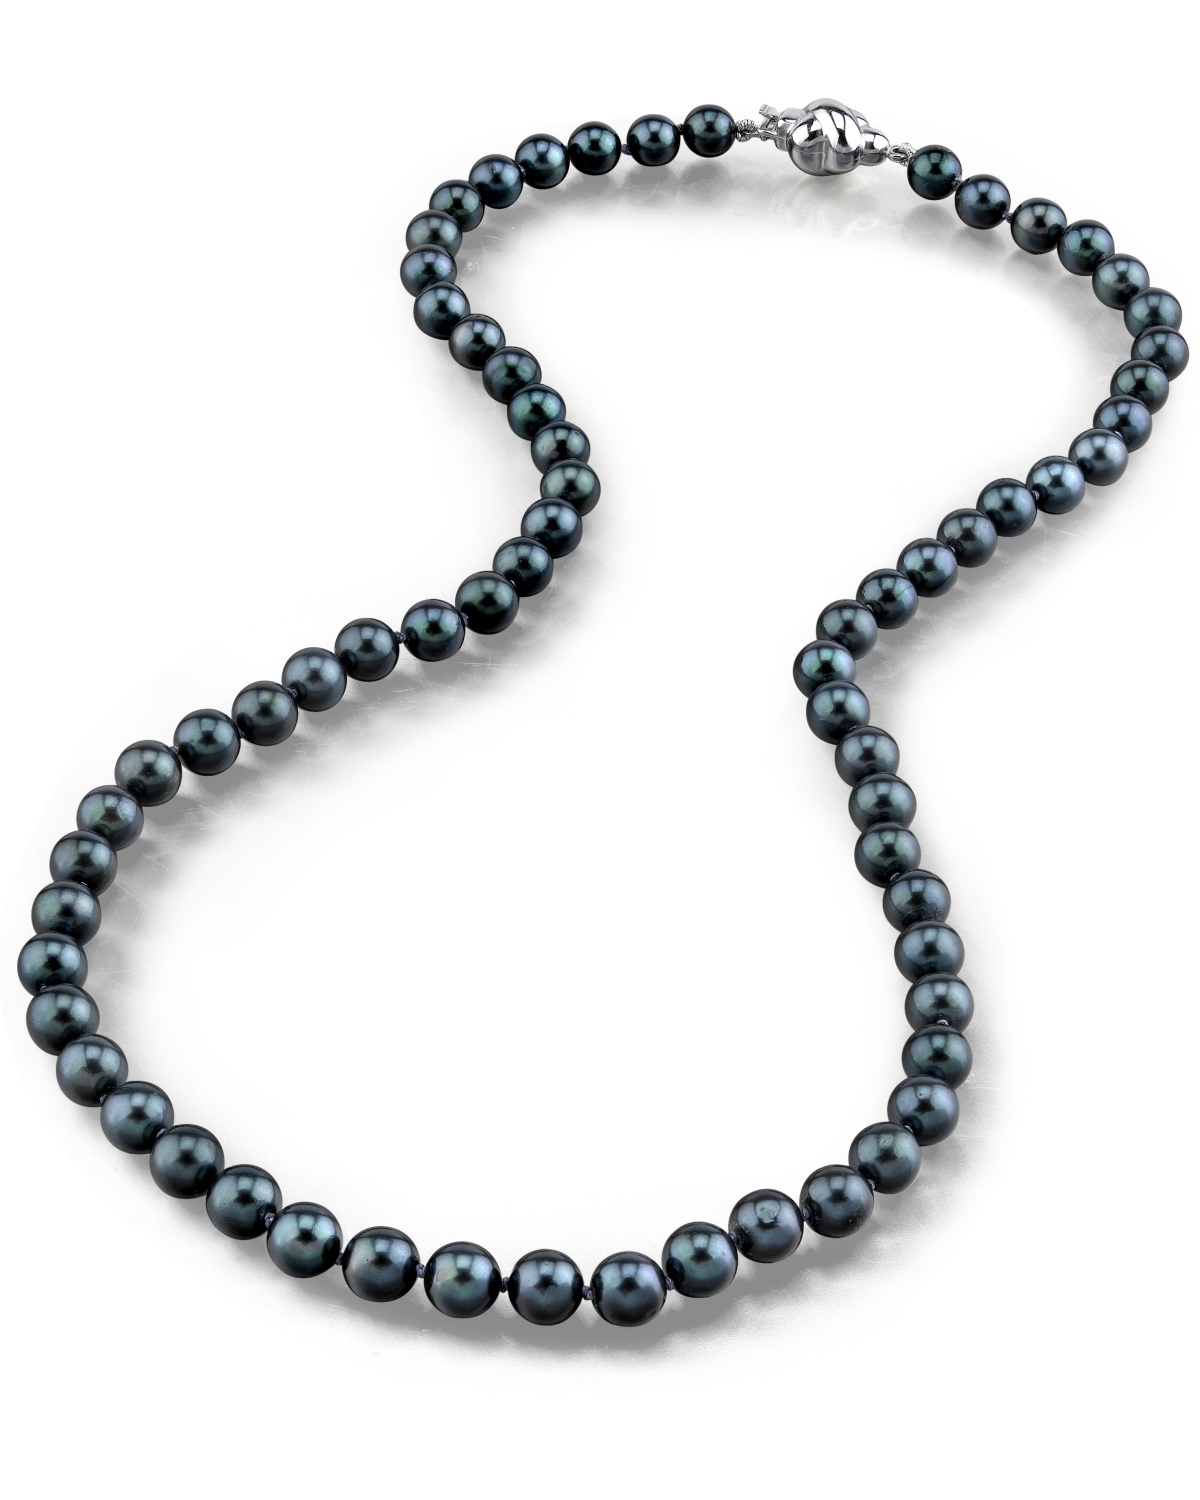 bd80d6c5b1c053 5.0-5.5mm Japanese Akoya Black Pearl Necklace - AAA Quality